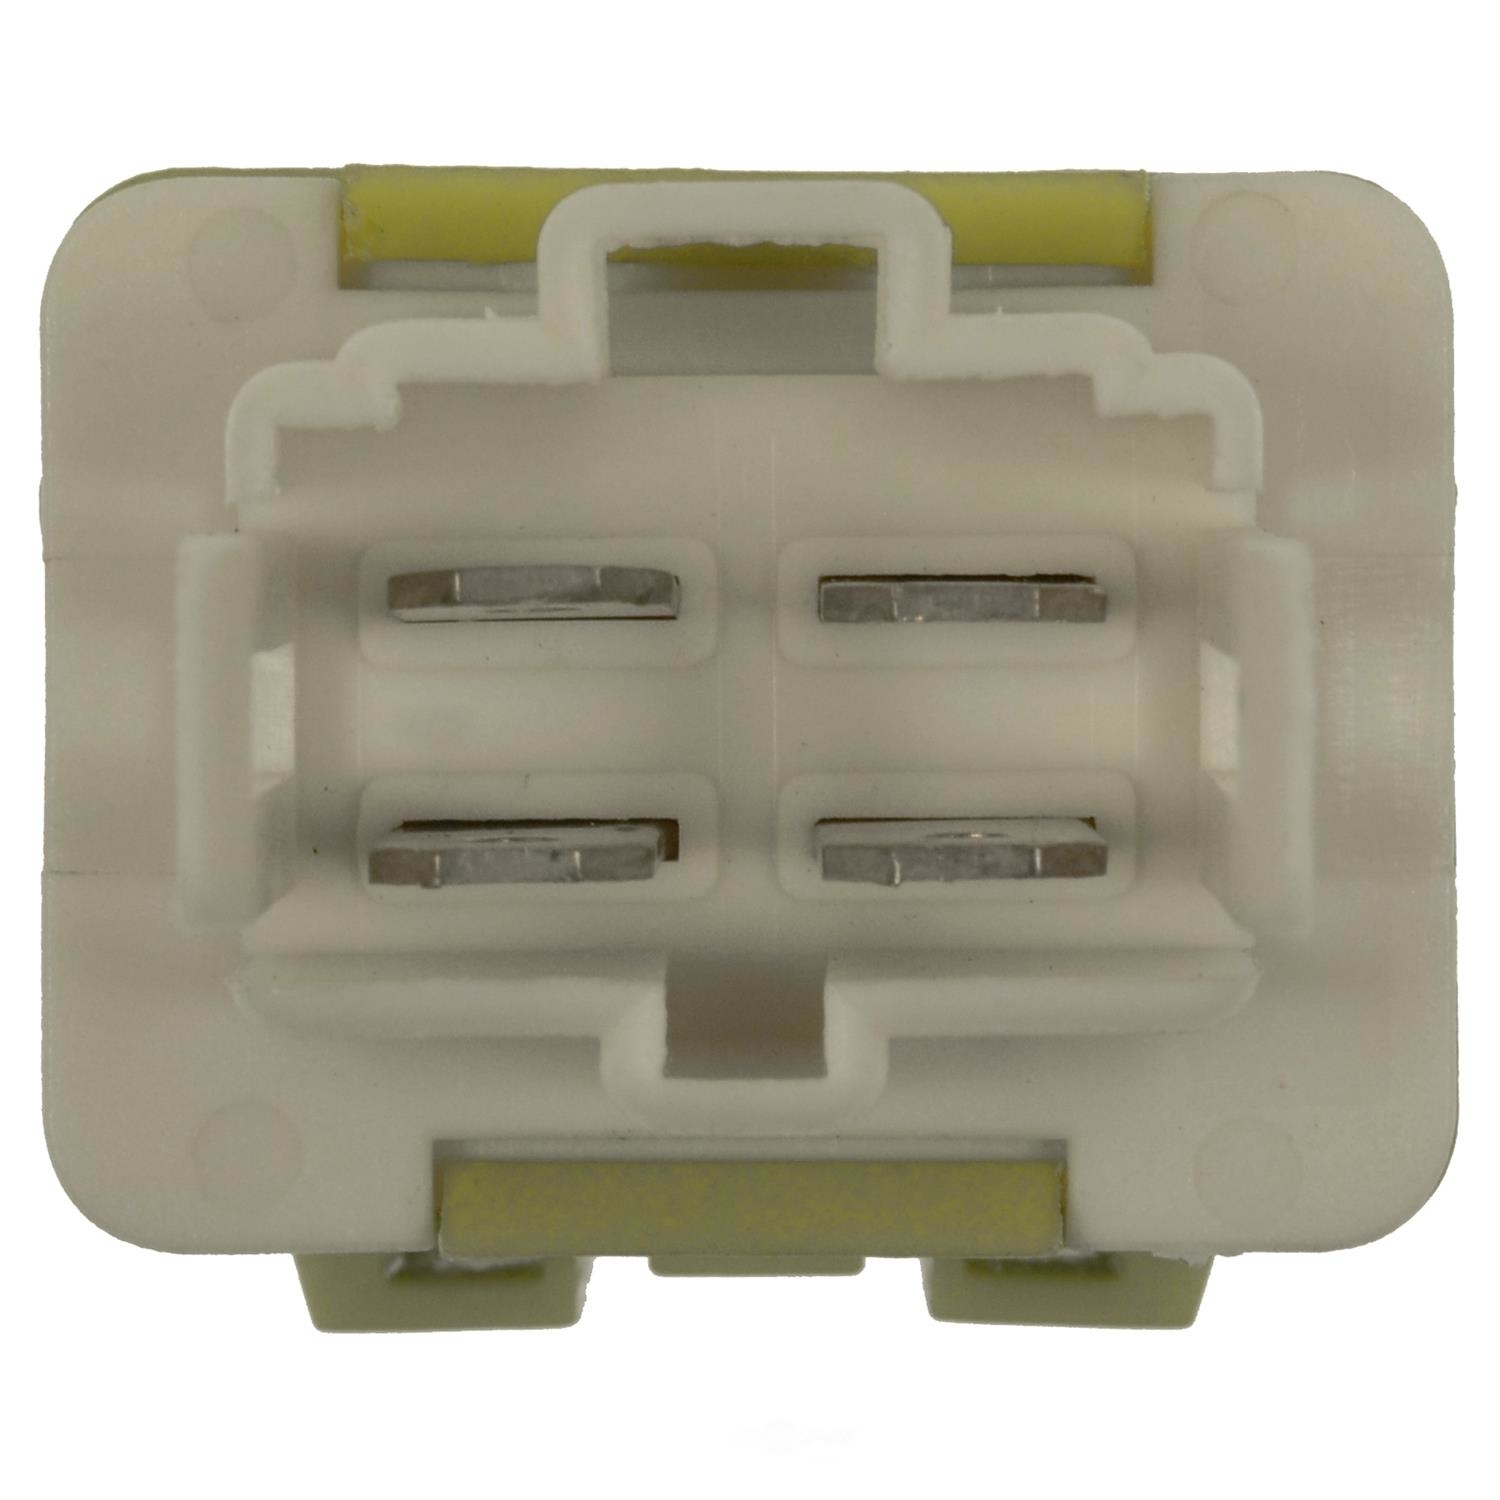 STANDARD T-SERIES - Ignition Relay - STT RY667T